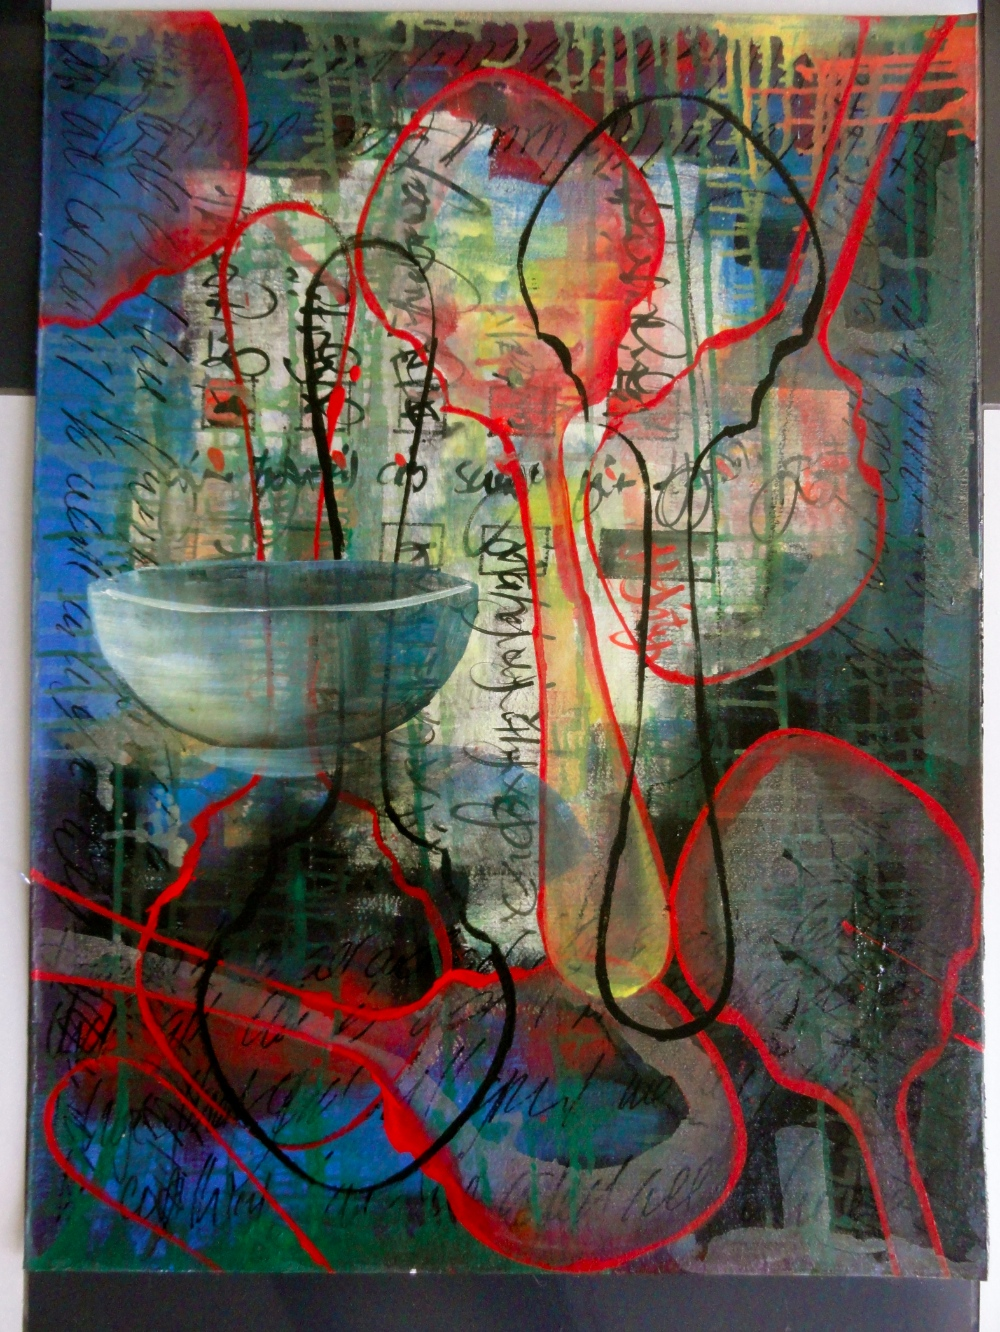 Cheryl Penn Painting Asemic writing  The Authentic Massacre of the Innocent Image